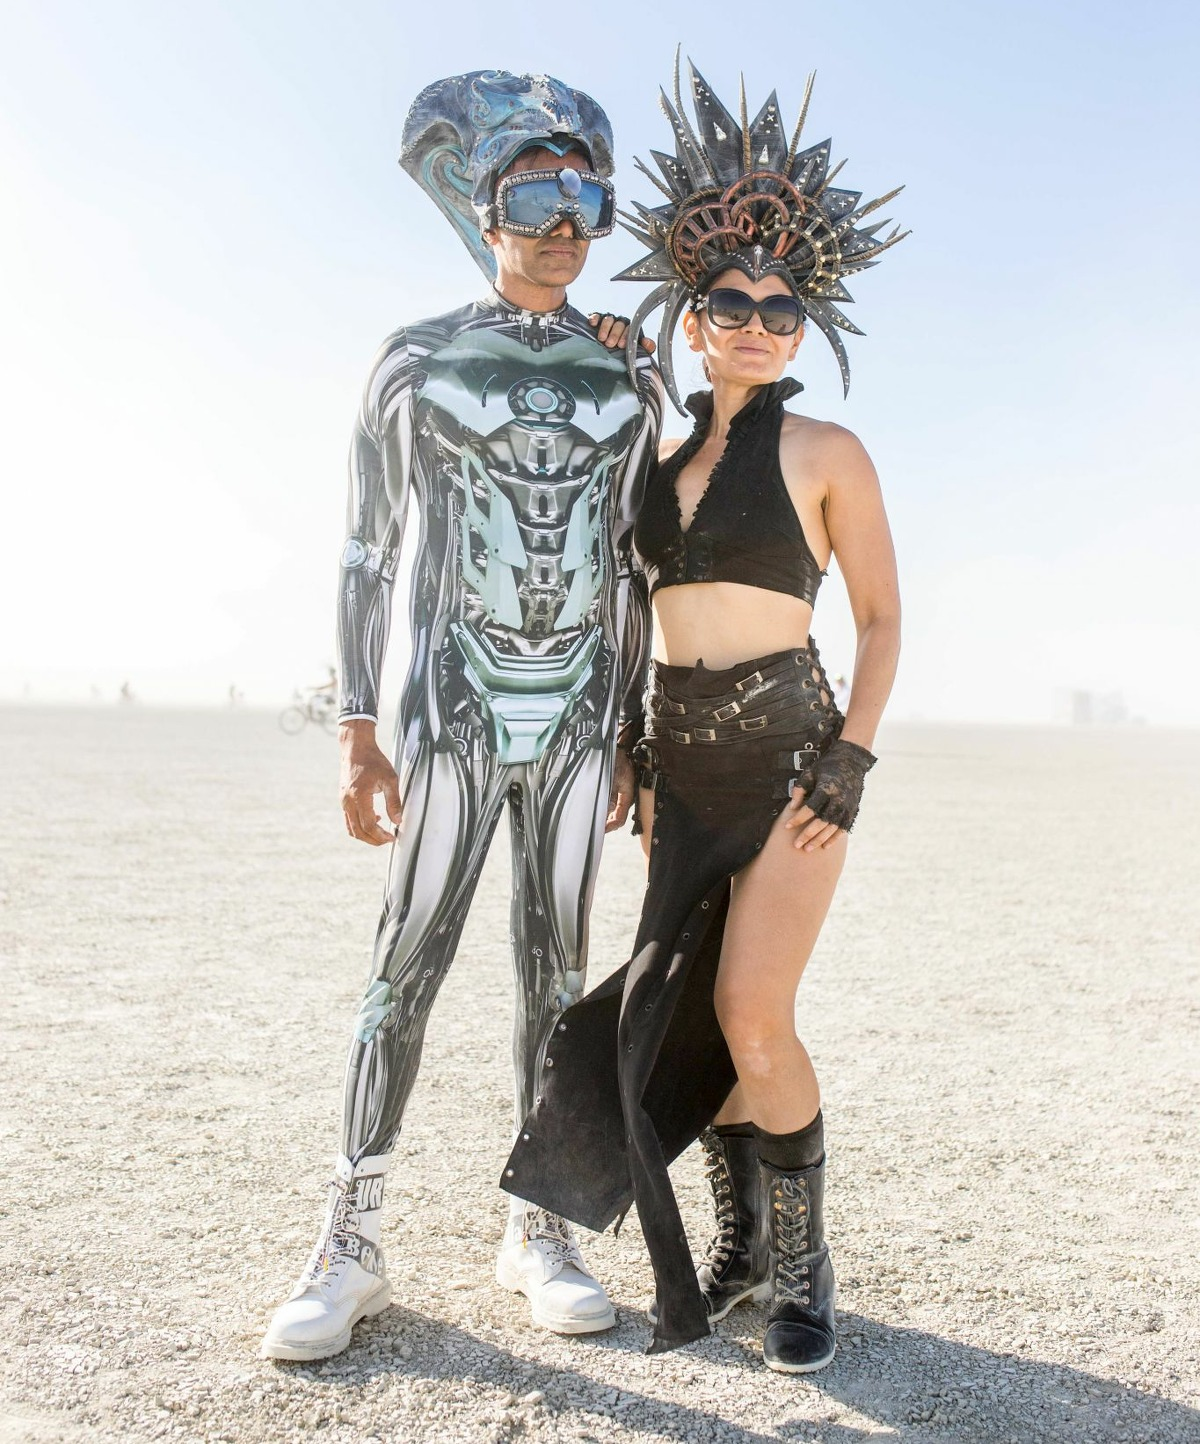 Sami Muneer and friend at Burning Man 2019.